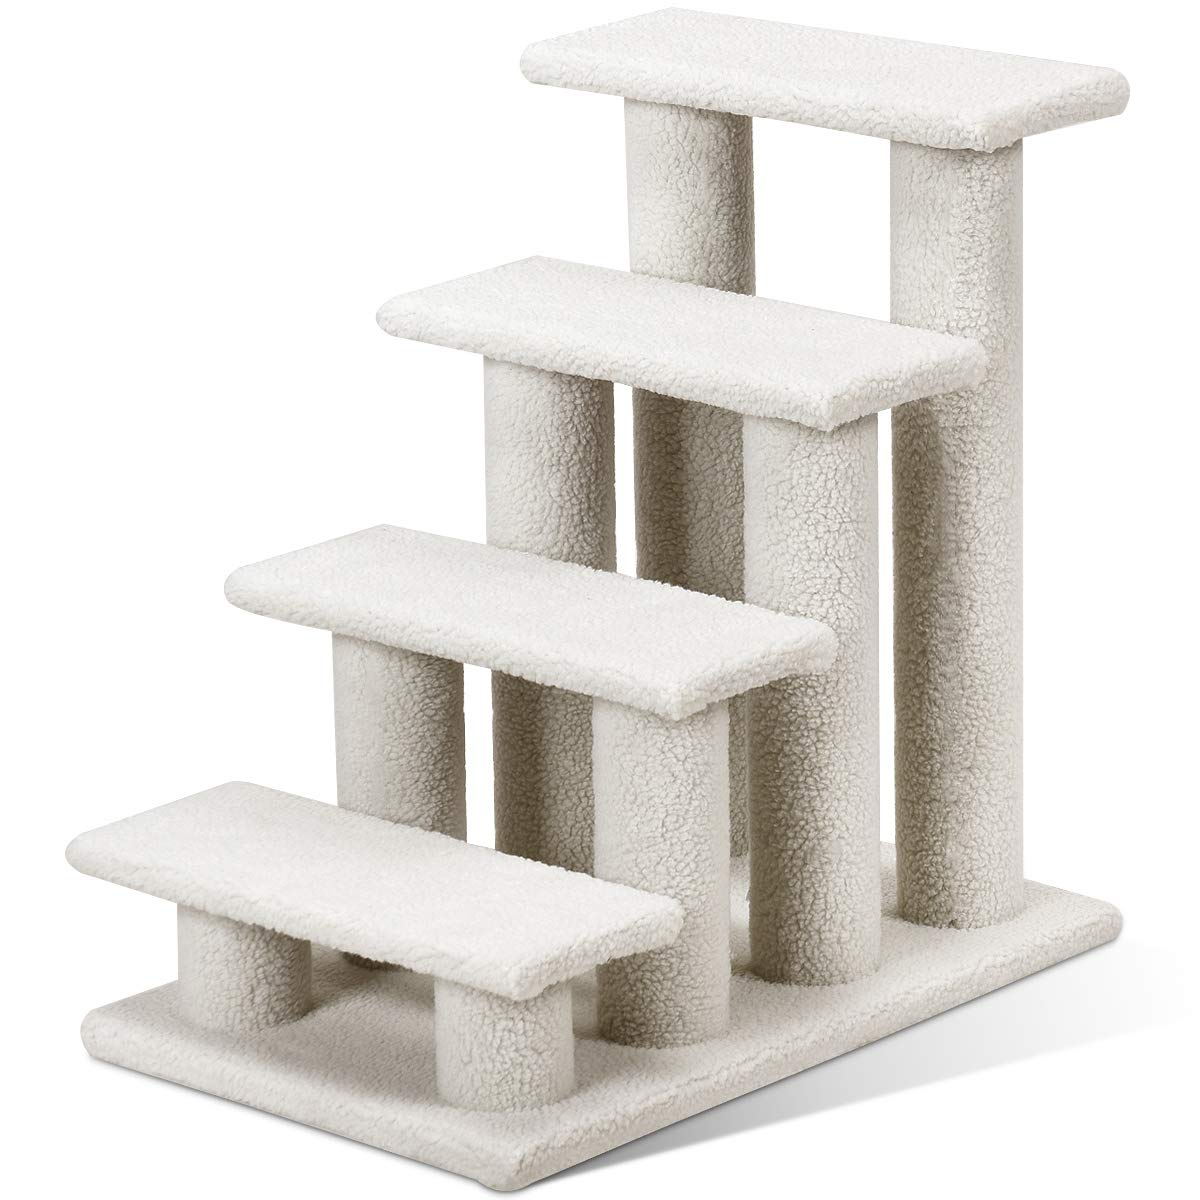 Tangkula Pet Stairs Ramp for Cats and Dogs Cat Climber Kitten Steps (Grey) by Tangkula